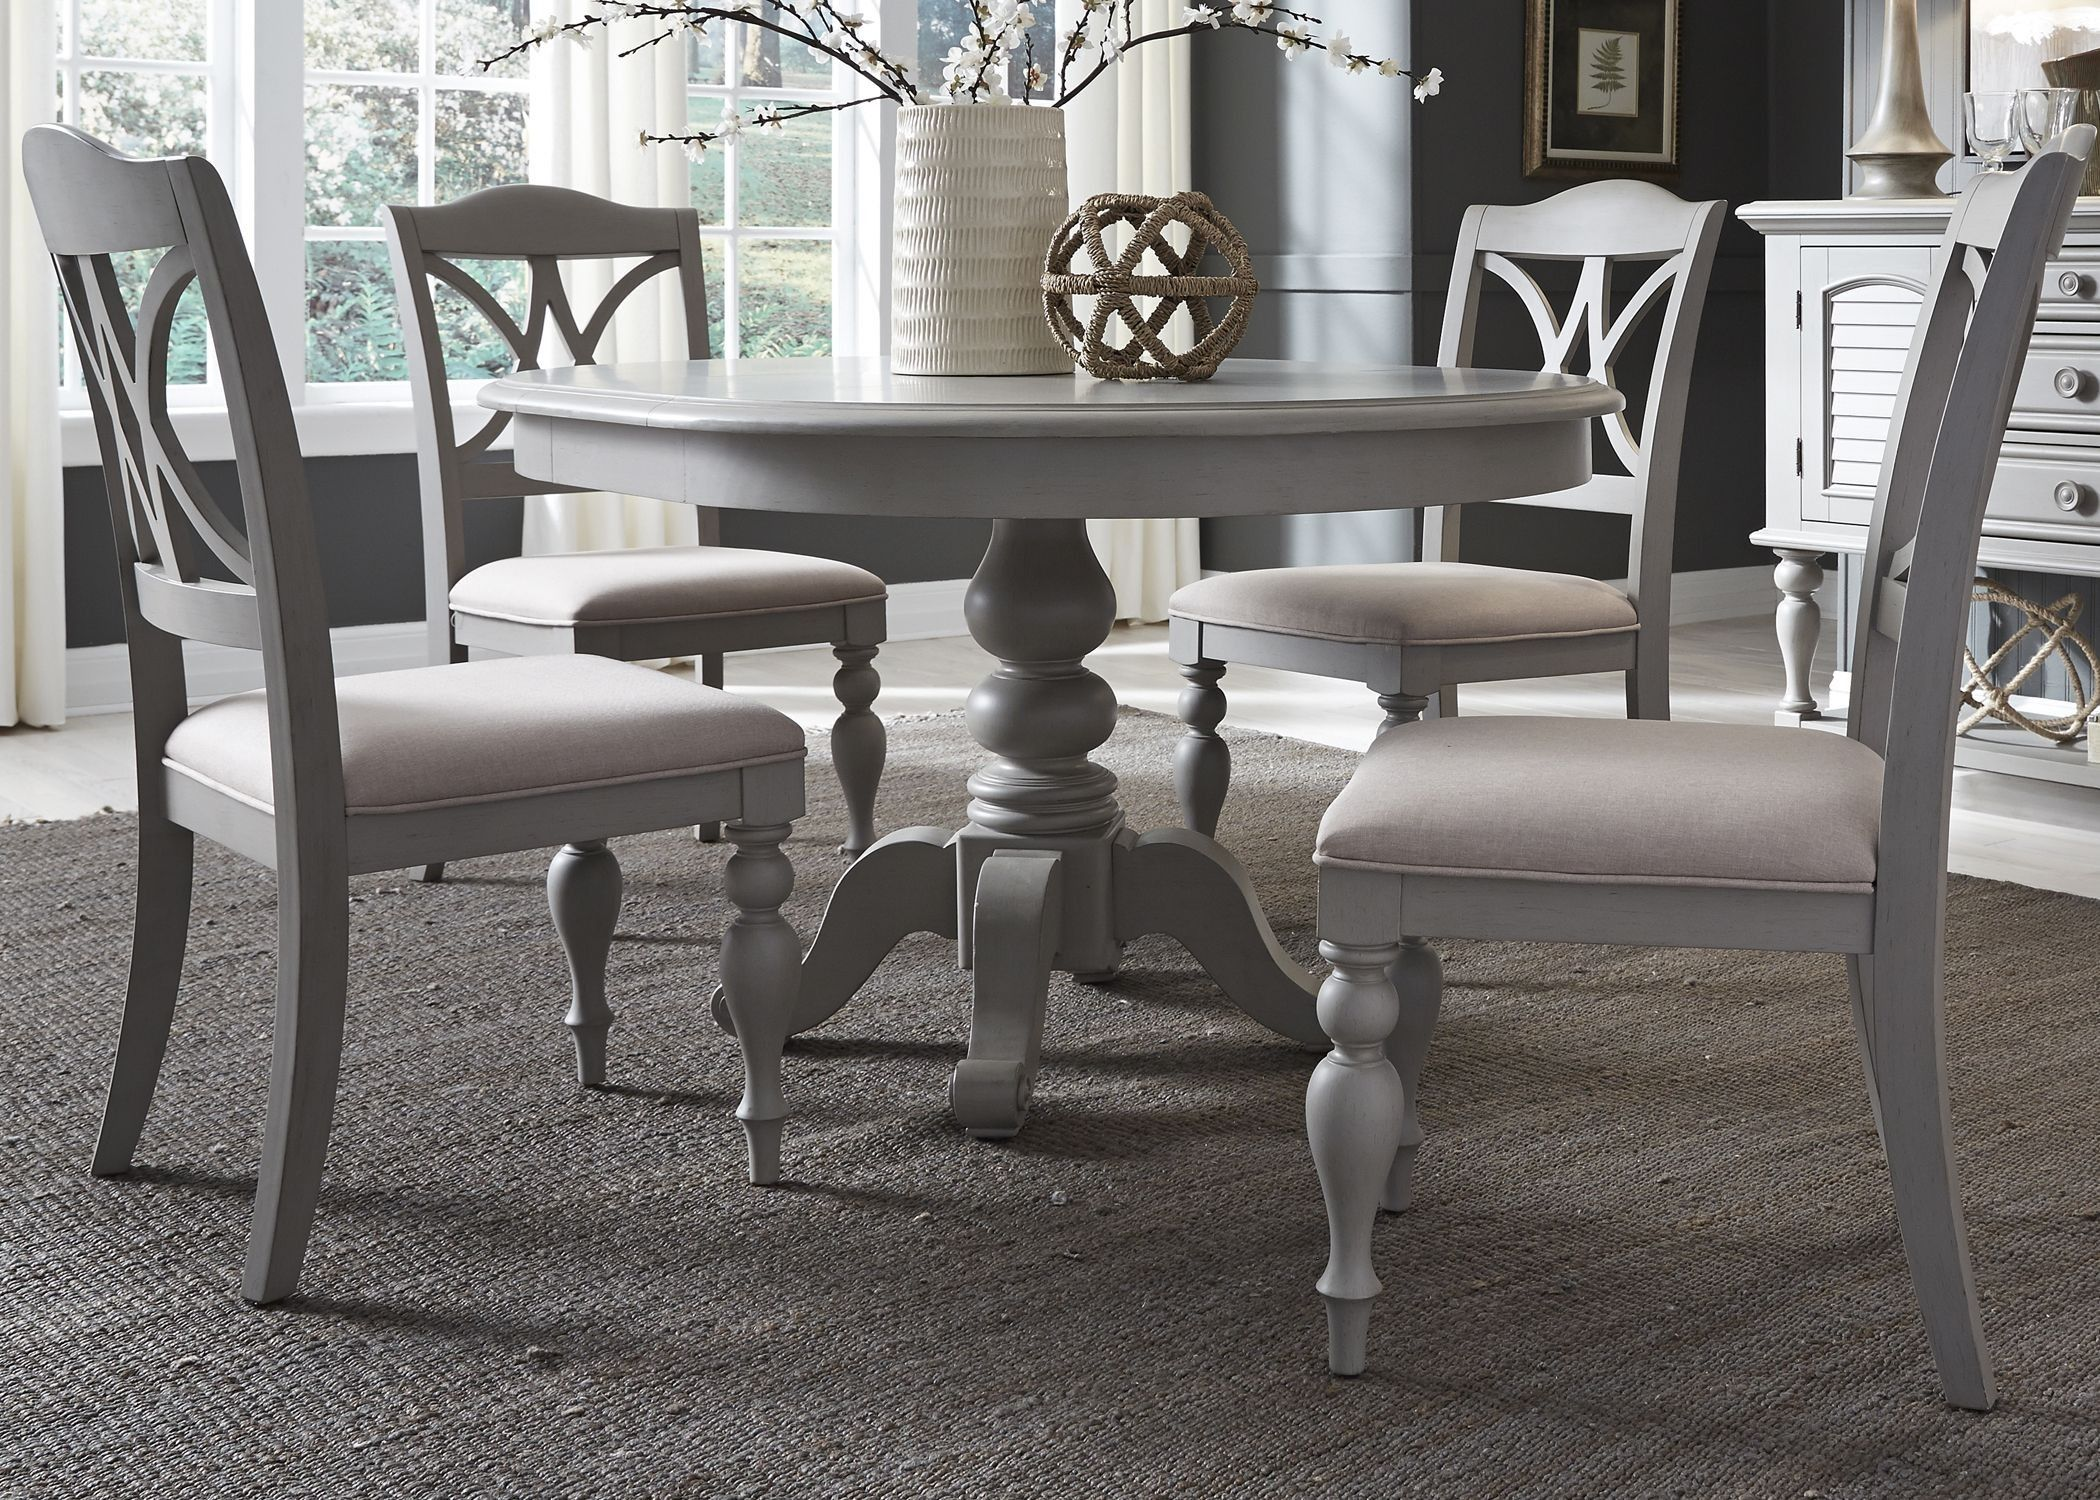 Summer house dove grey round extendable dining table kitchen